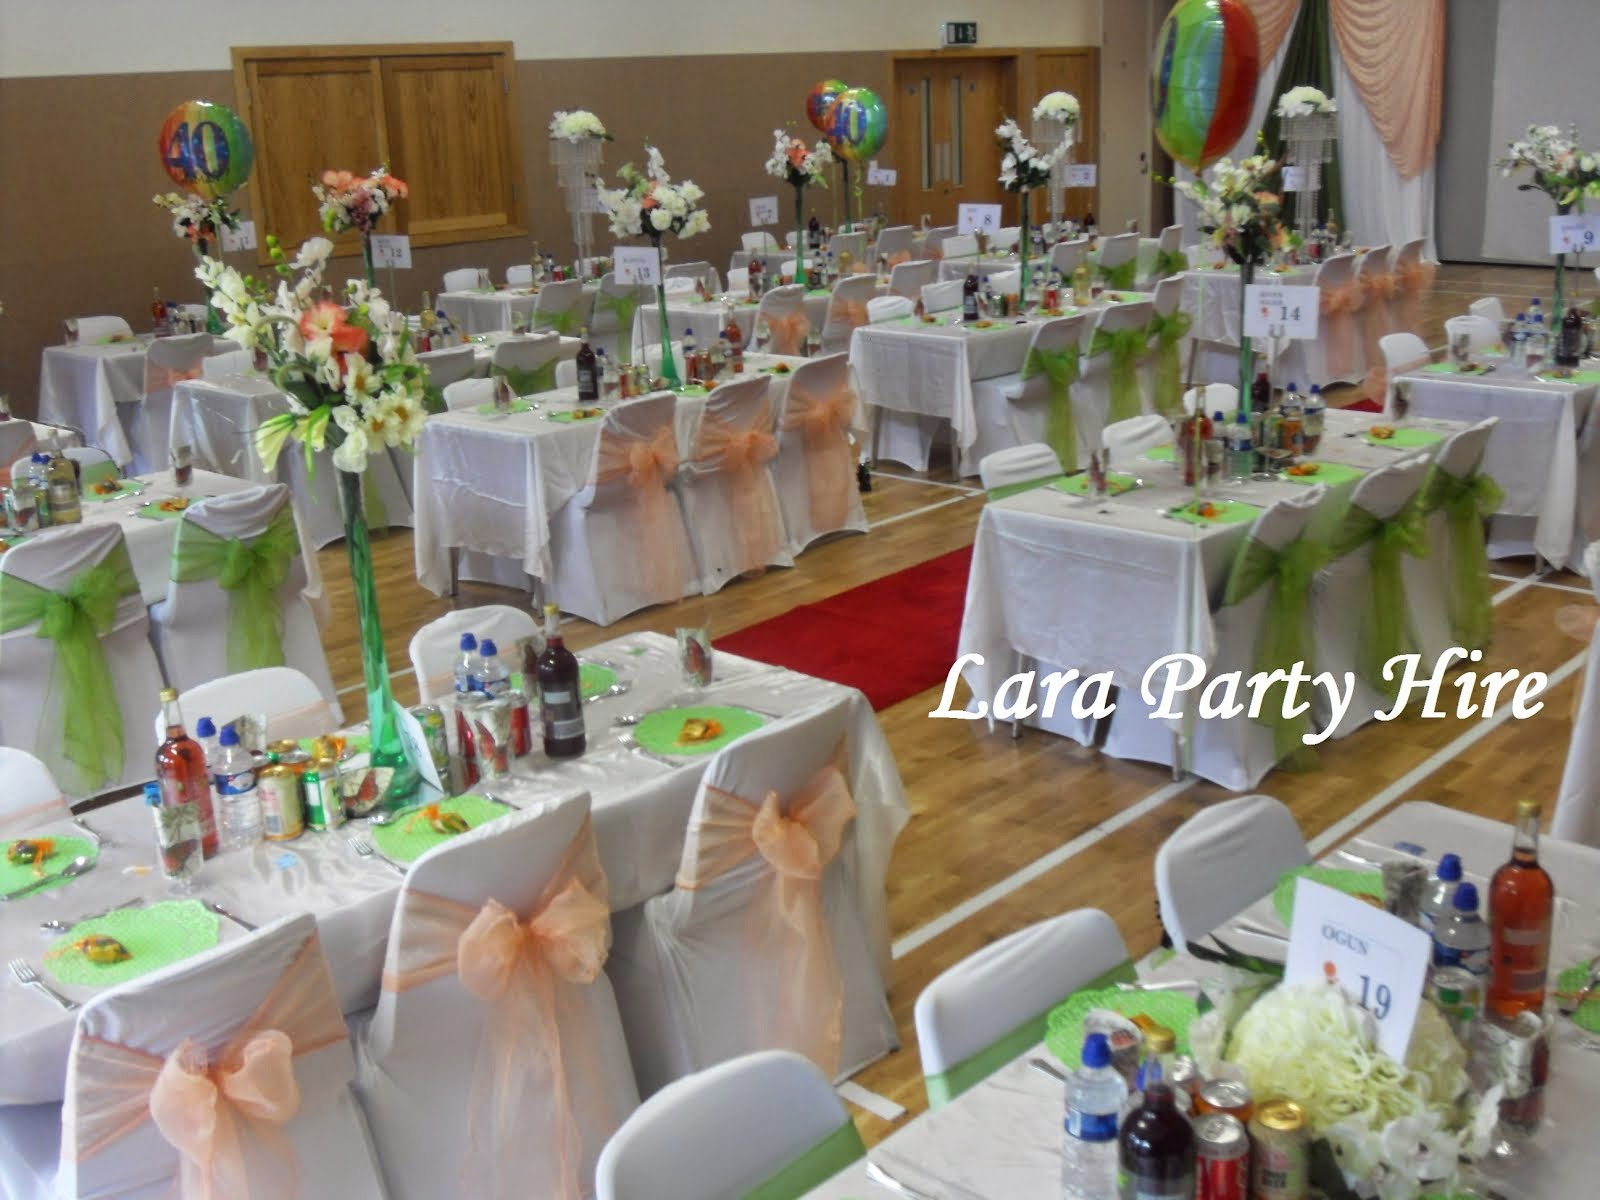 Chair Cover Hire Wembley Bedroom Deals Lara Party Crystal Chandelier Table Centerpiece